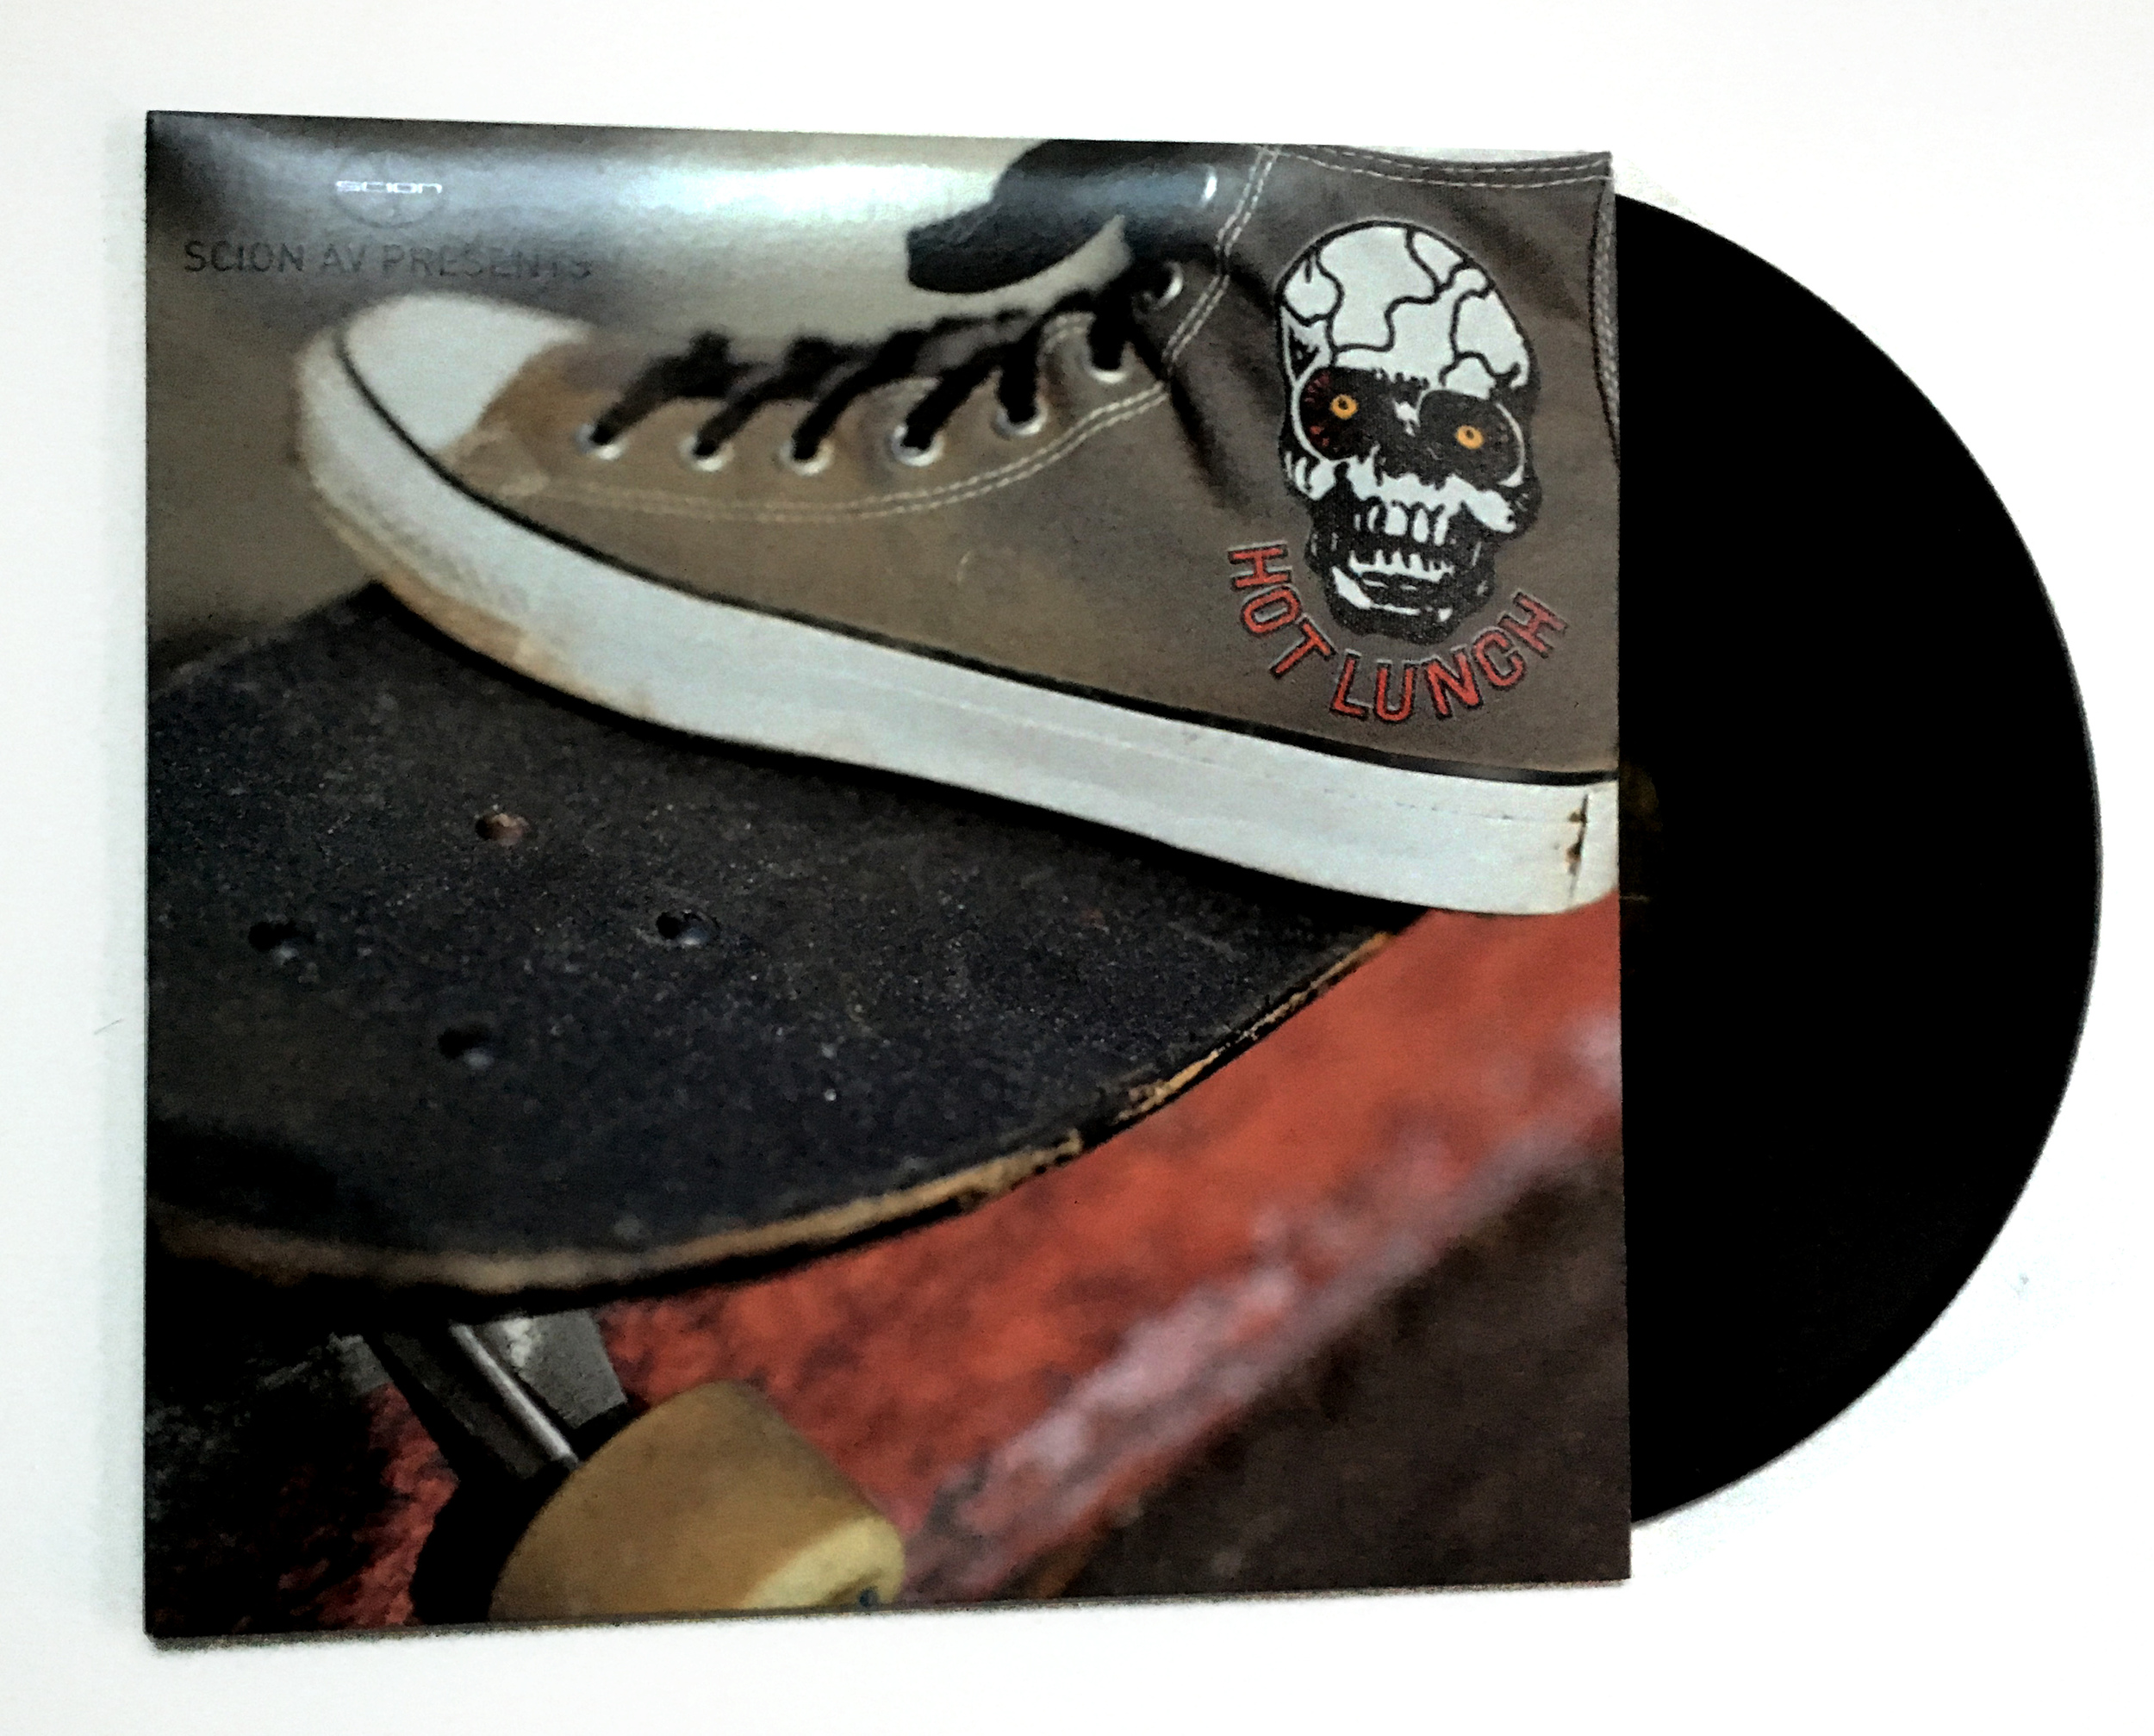 STARCADE DESIGNS CONVERSE SHOE FOR HOT LUNCH / SCION LP / PHOTO BY CHARLIE CARR      .